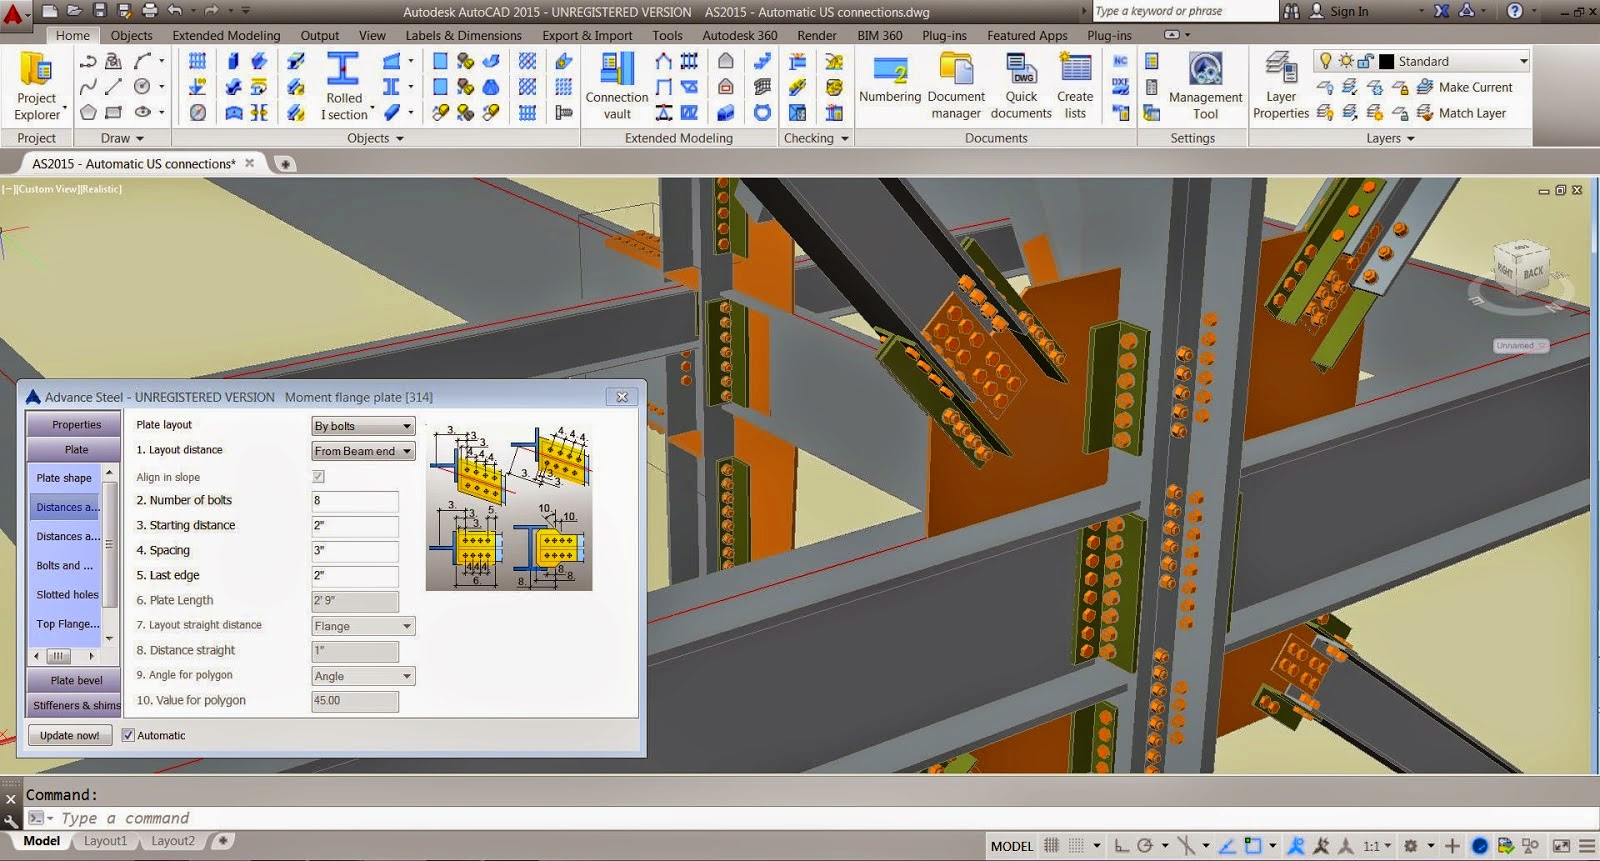 Autodesk Autocad 2016 screenshot by www.ifub.net